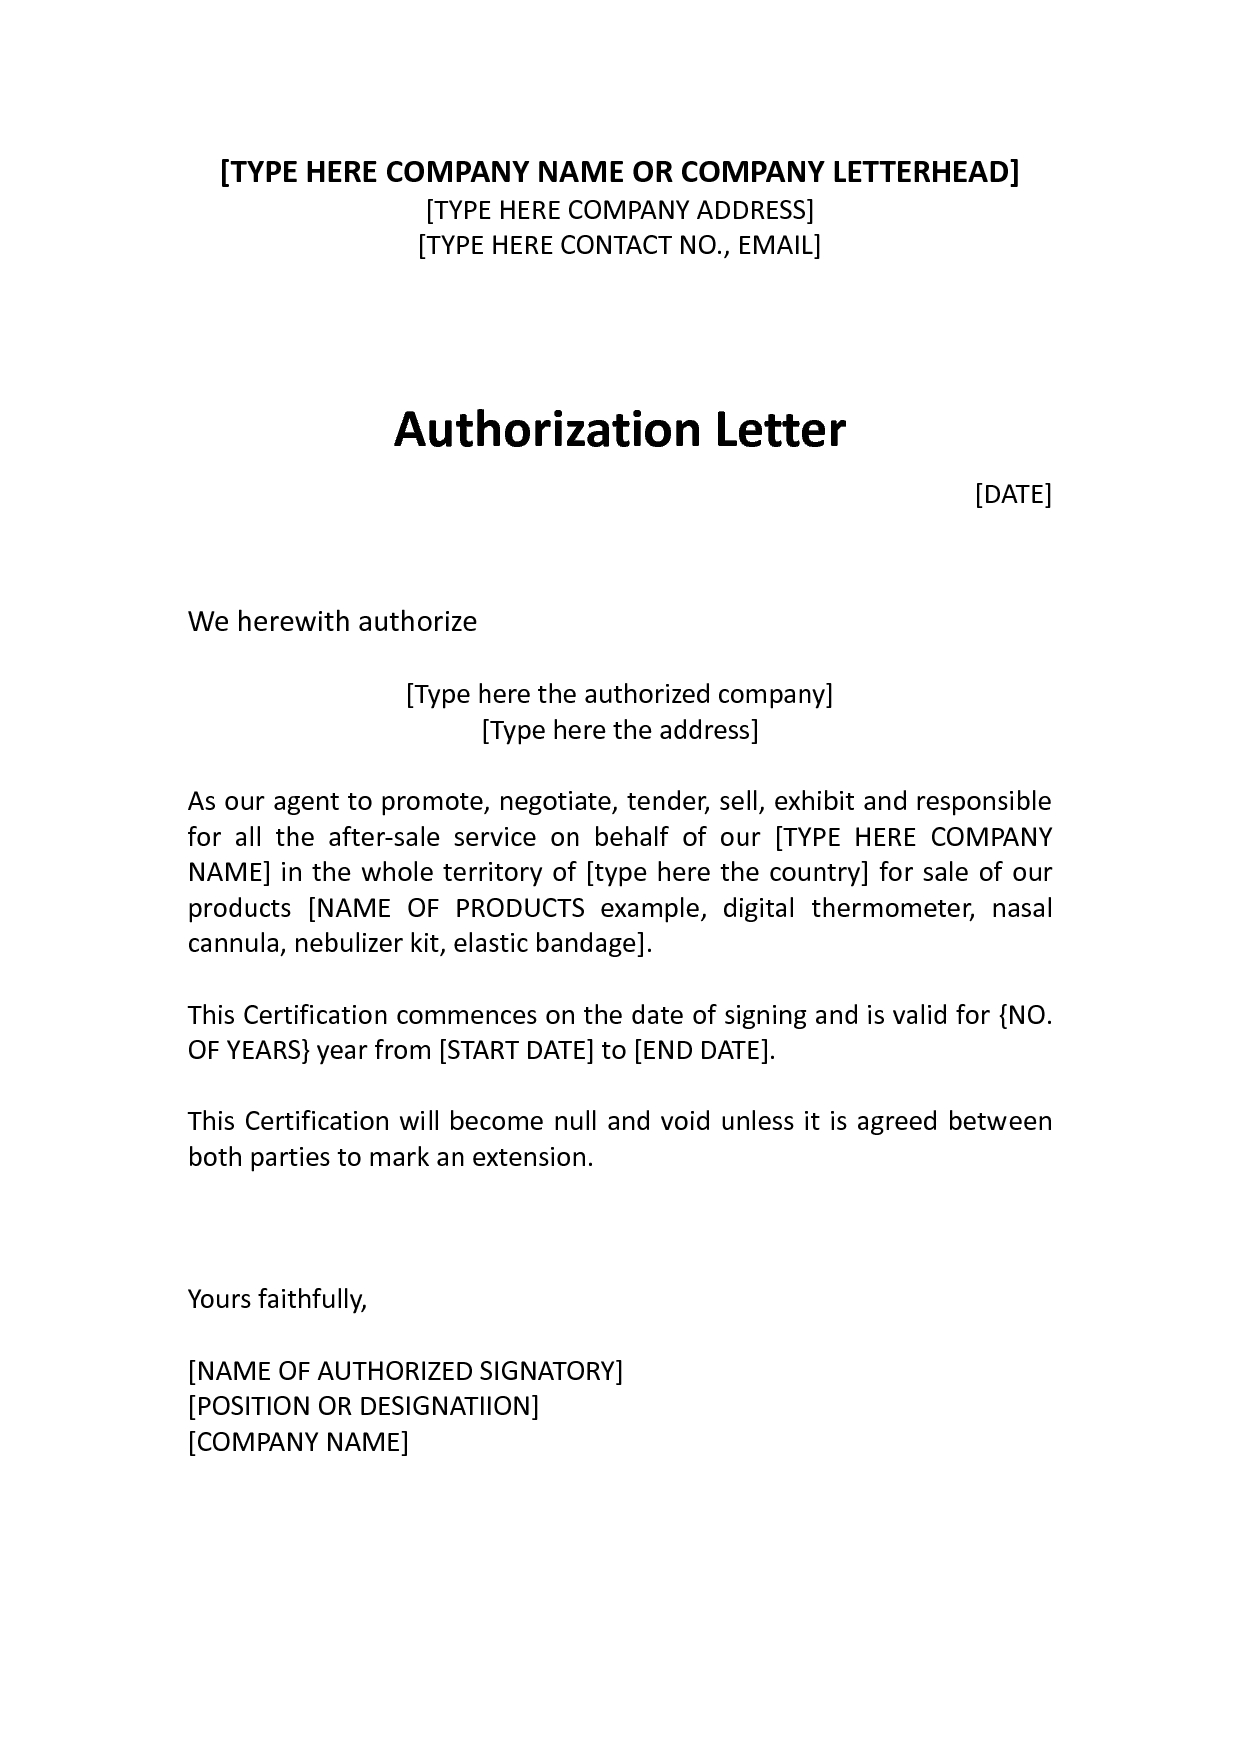 Renters Insurance Letter Template - Authorization Distributor Letter Sample Distributor Dealer